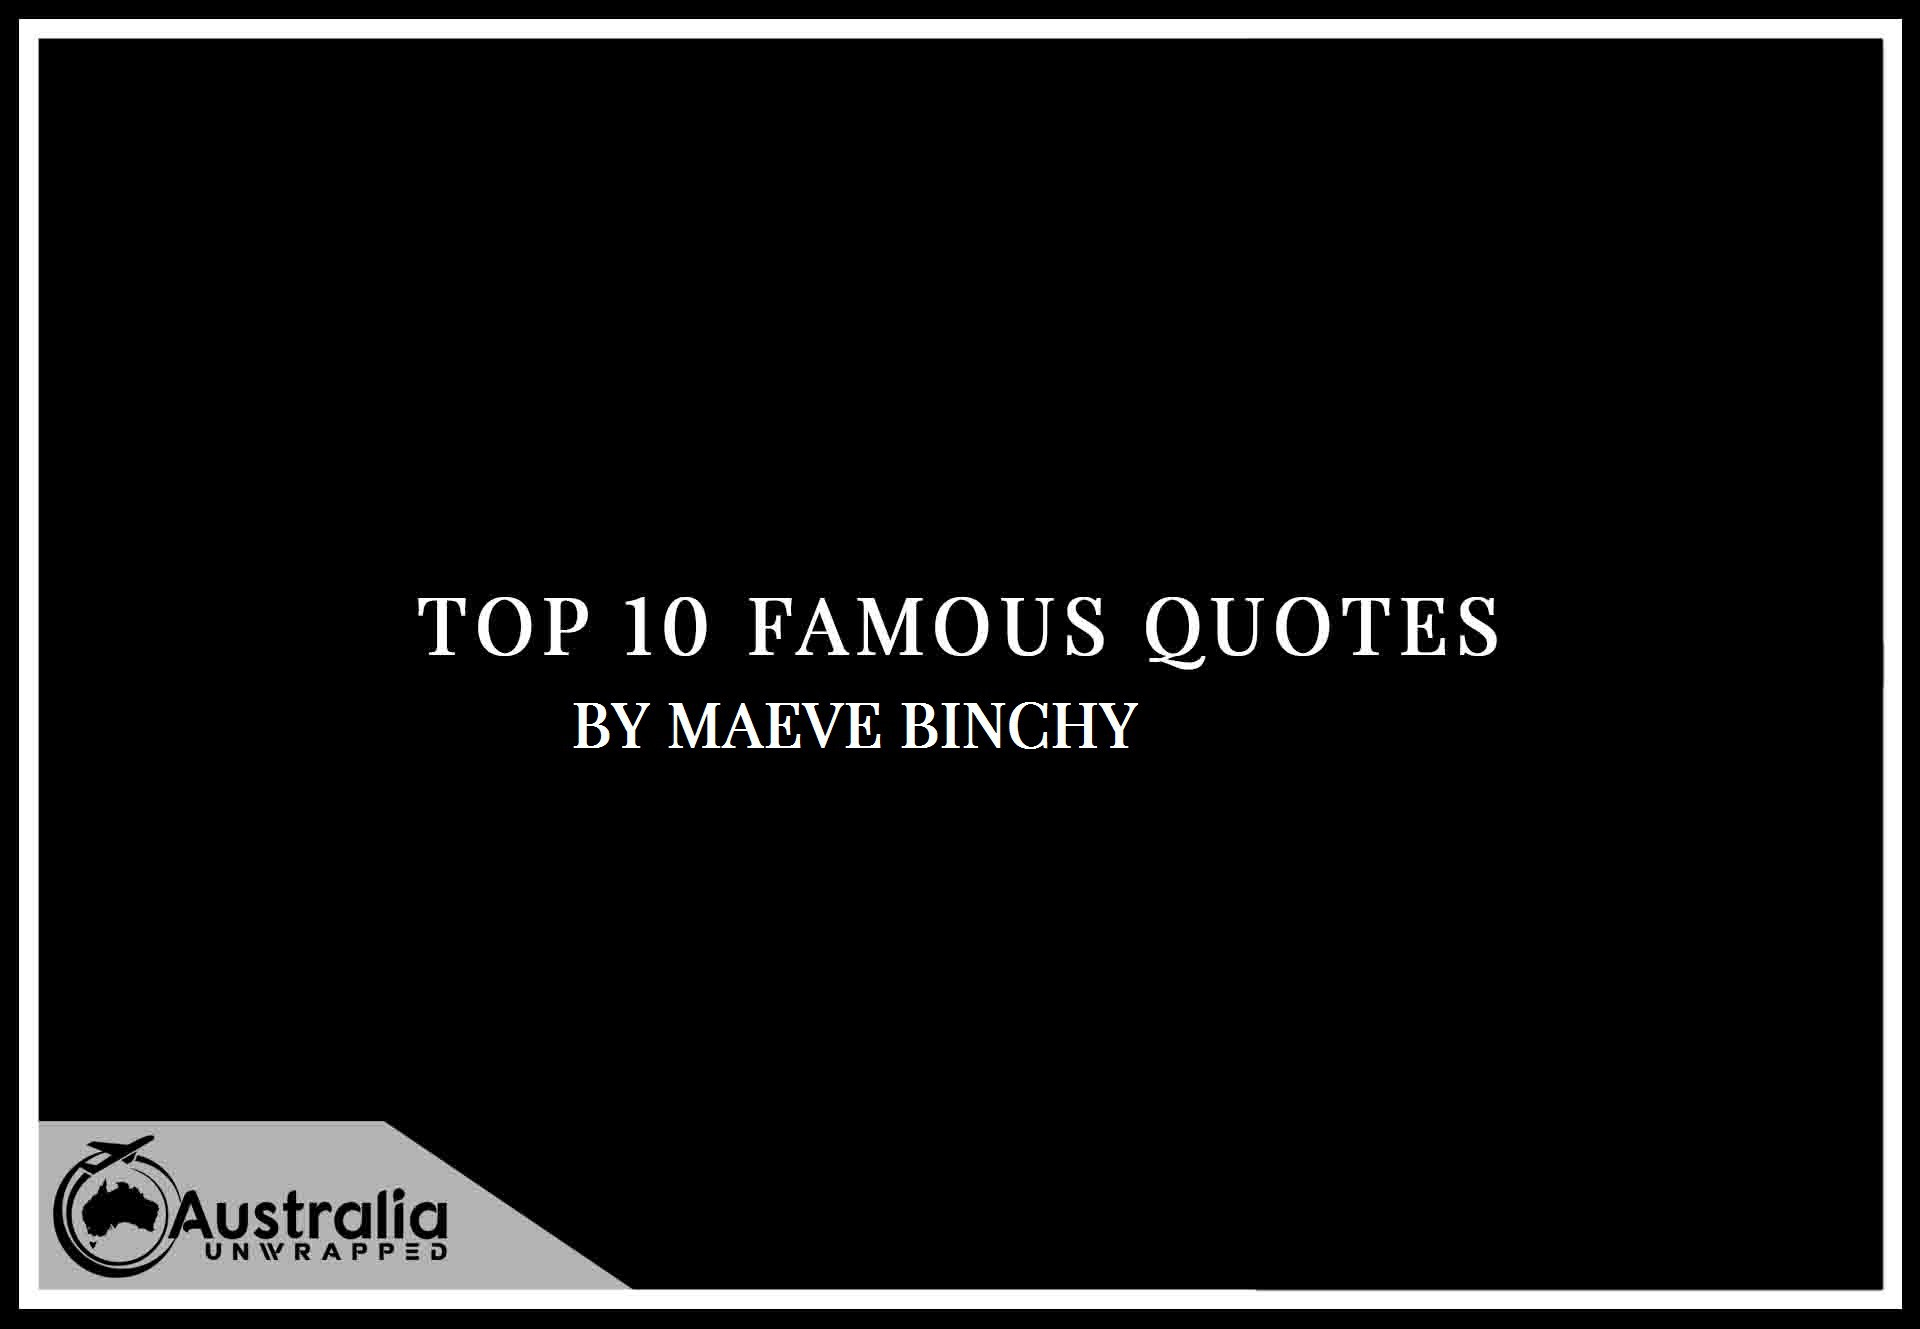 Maeve Binchy's Top 10 Popular and Famous Quotes